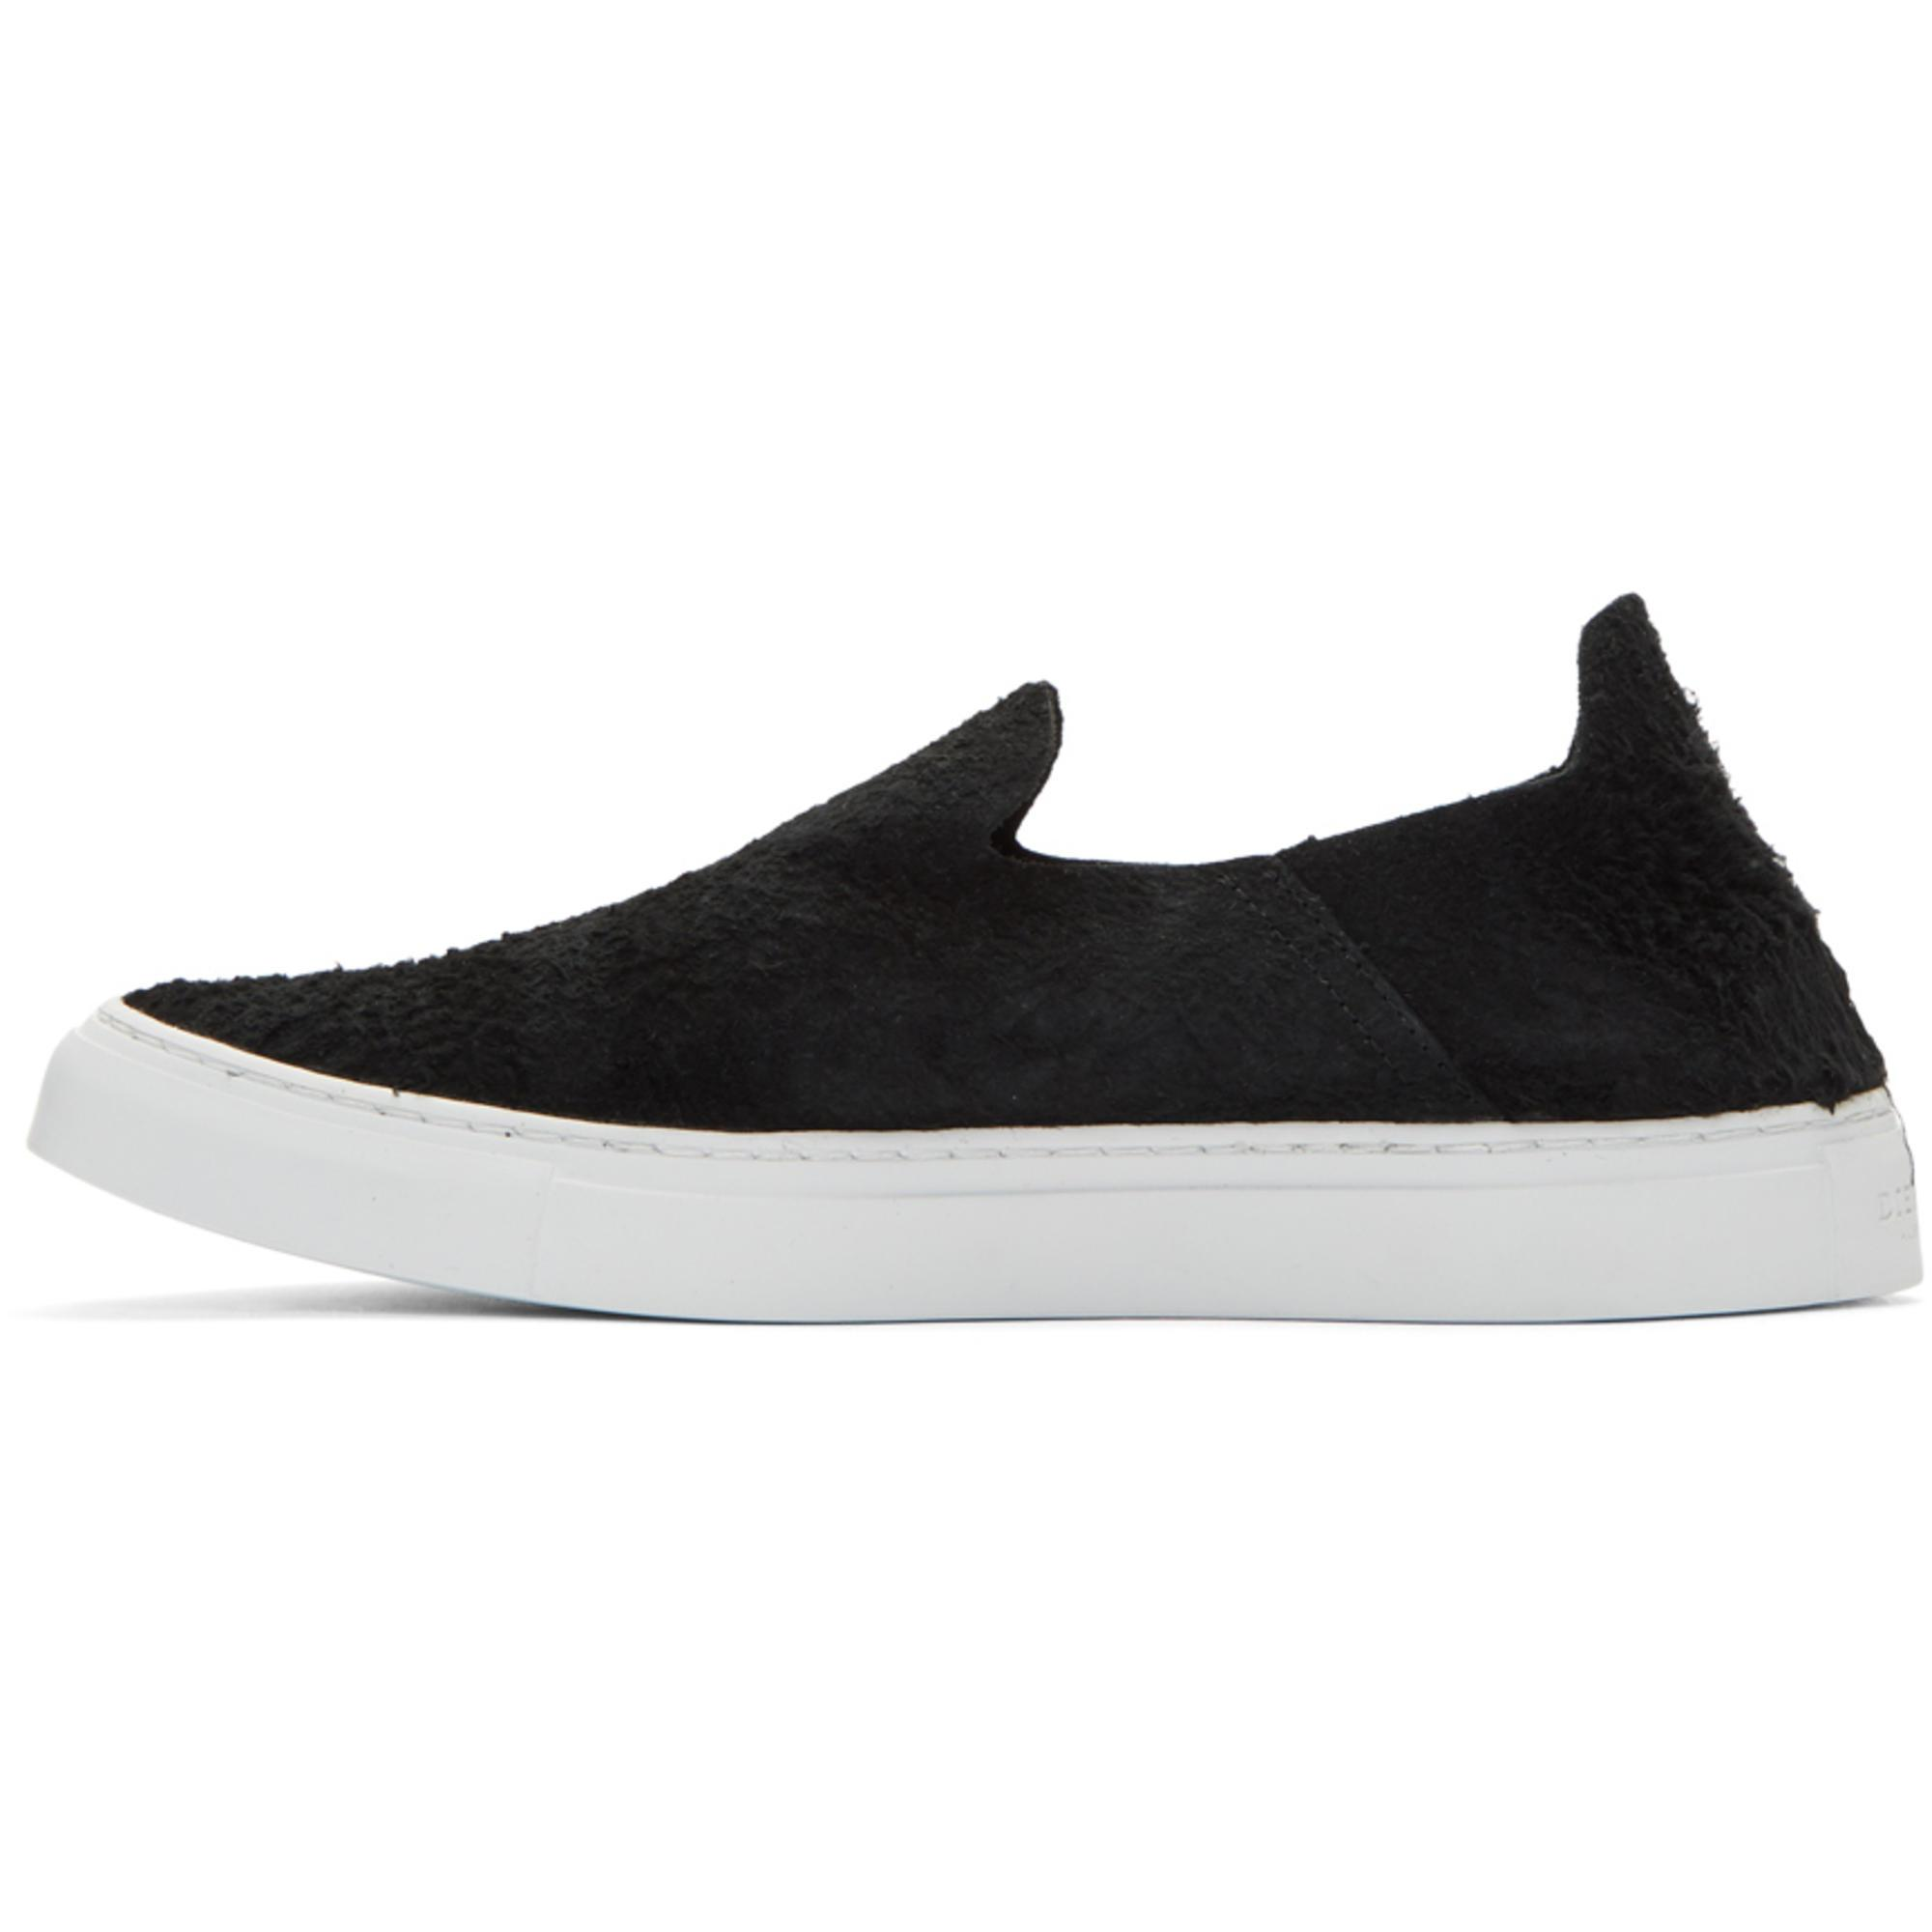 Diemme Black Suede One Slip-On Sneakers 2LXyIemN